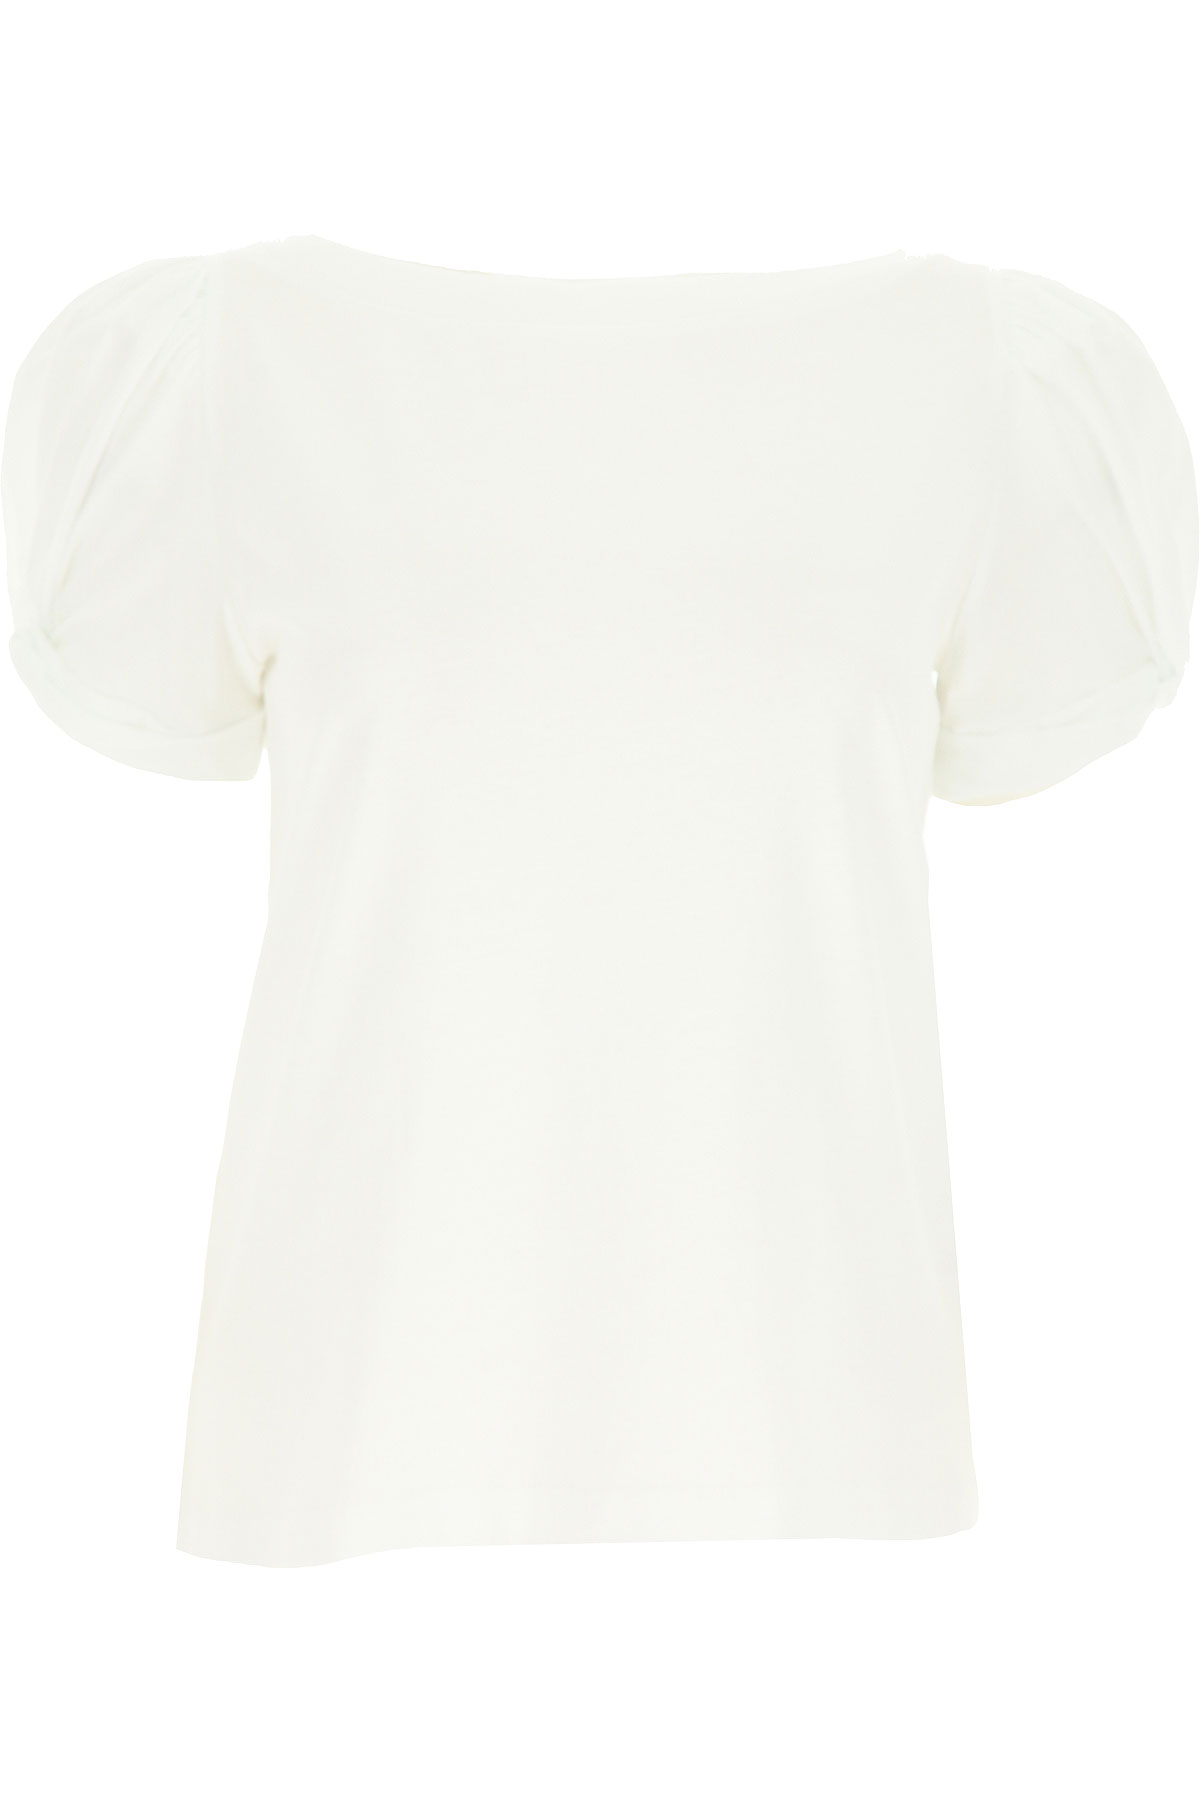 Federica Tosi Top for Women On Sale, White, Cotton, 2019, 10 2